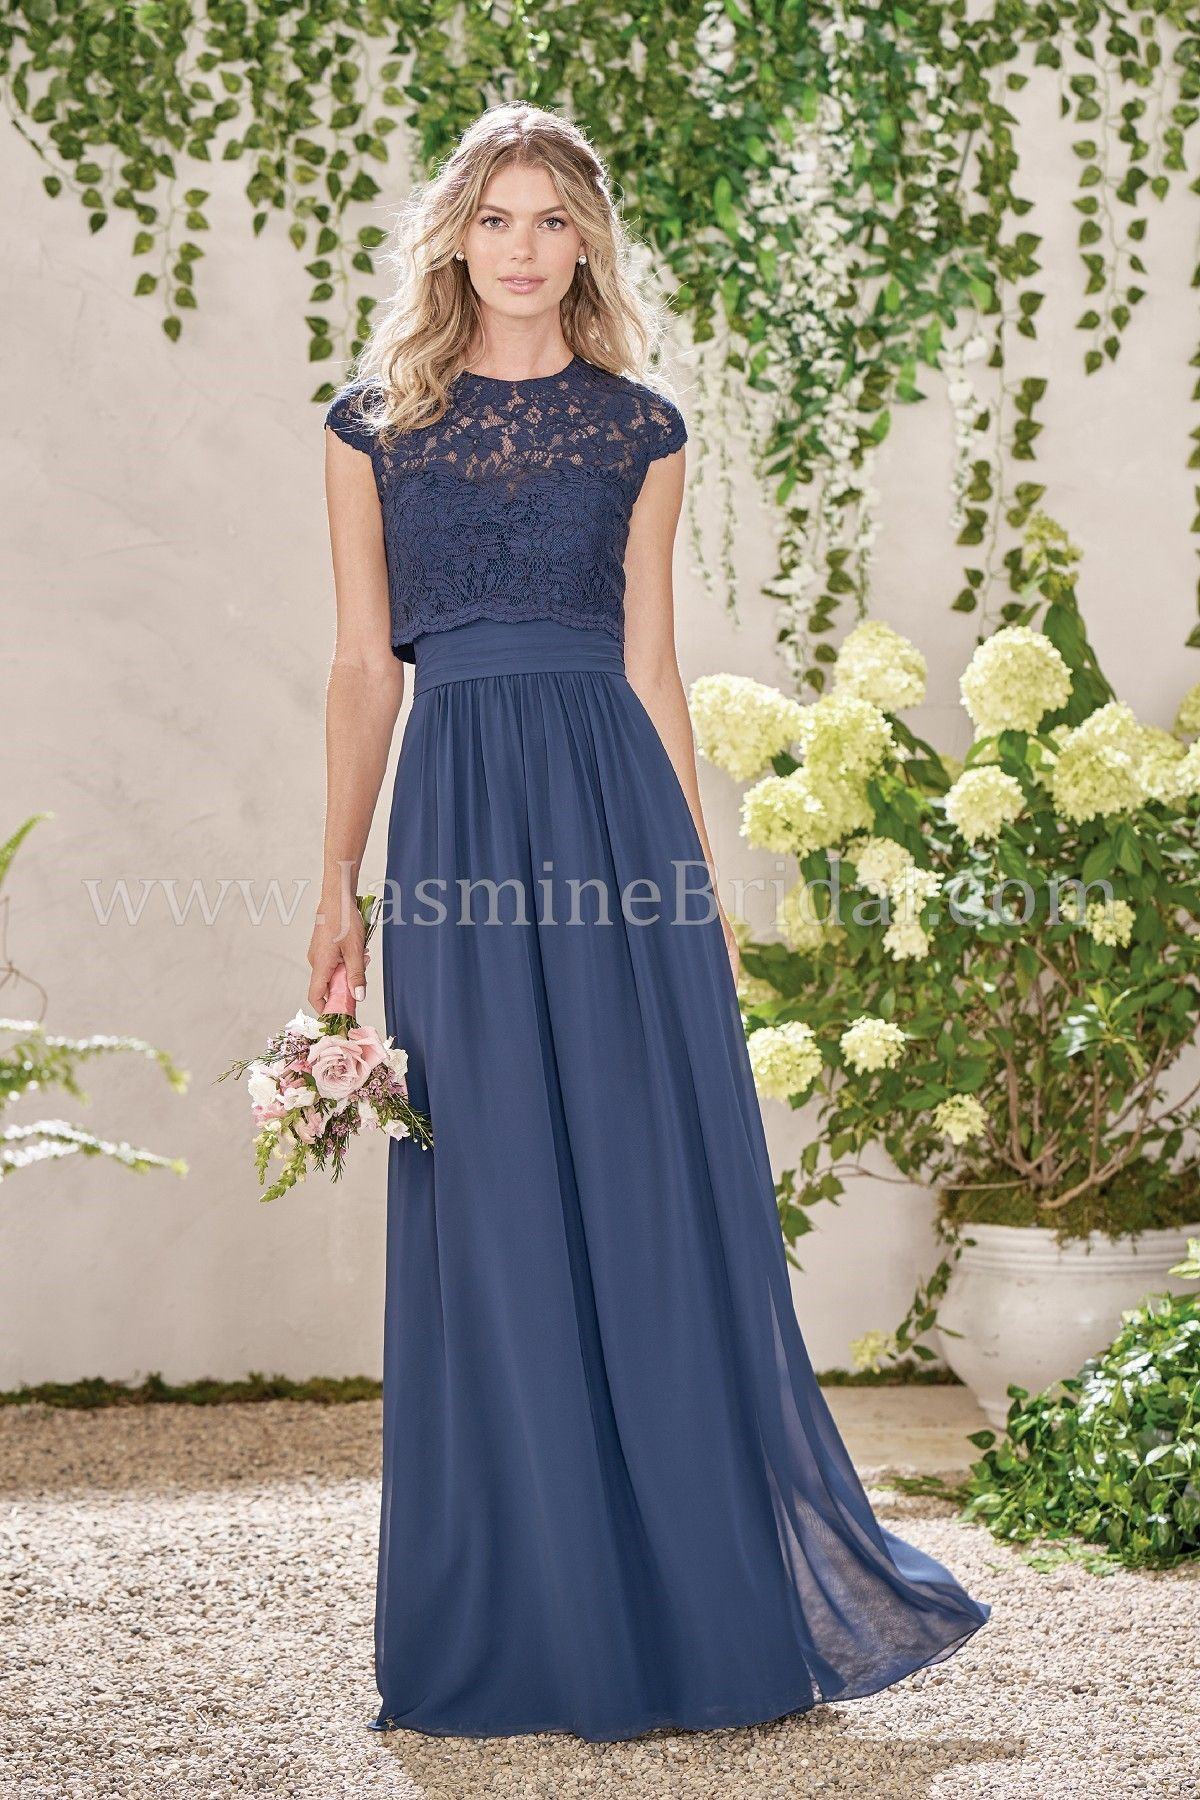 8ea5f789a1e Sweetheart poly chiffon dress in cayman blue with ruching on the skirt and  waistband. Matching cayman blue lace jacket with cap sleeves that button up  on ...